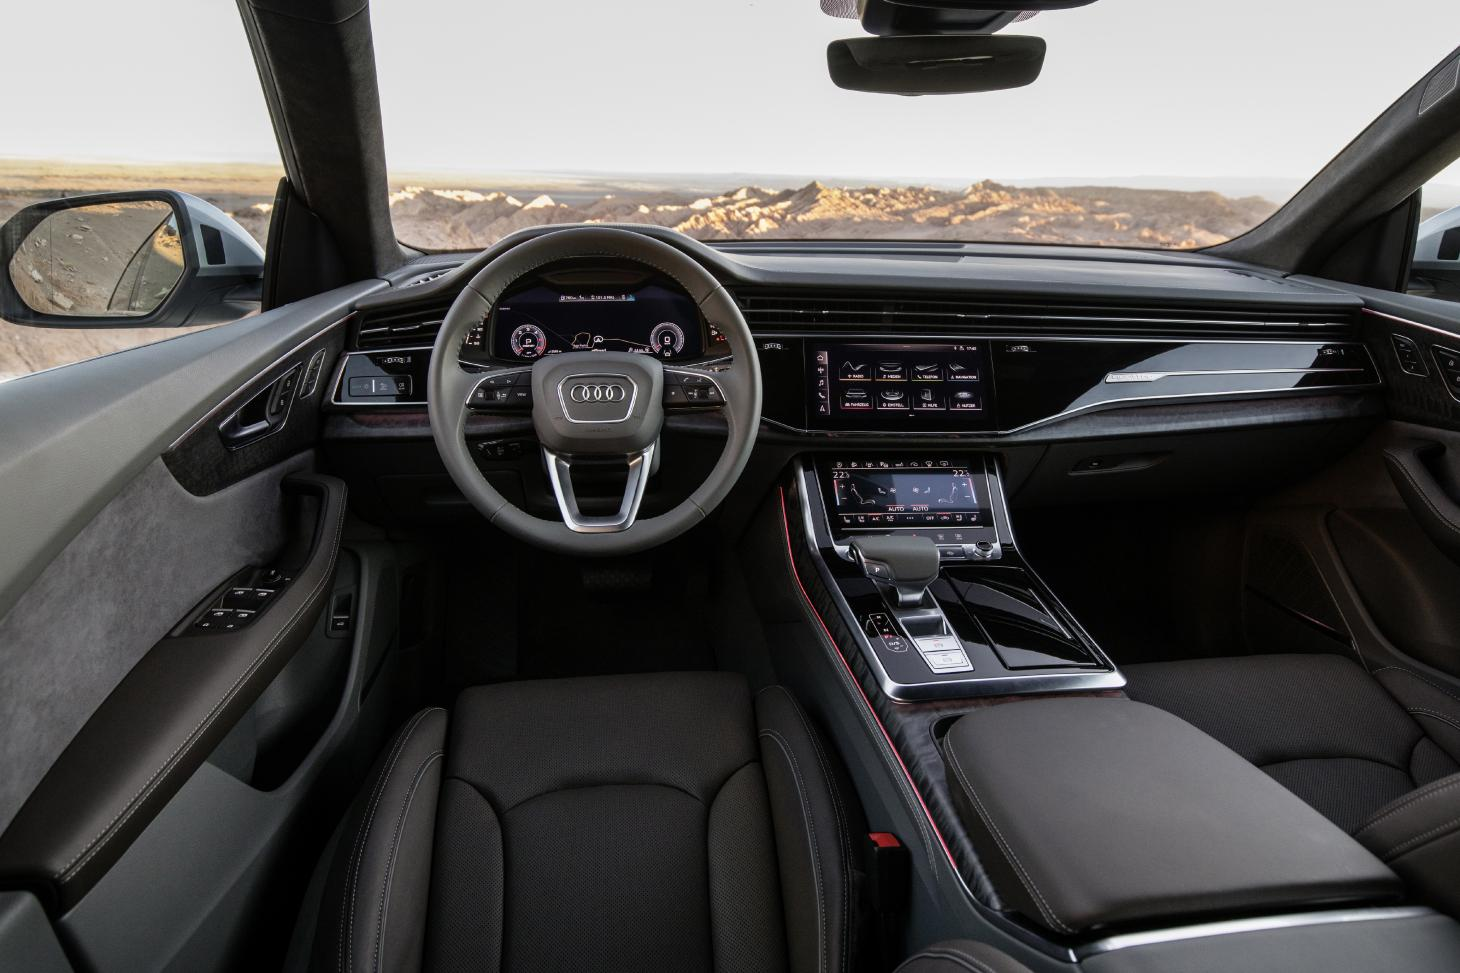 Driver cockpit of Audi Q8 SUV